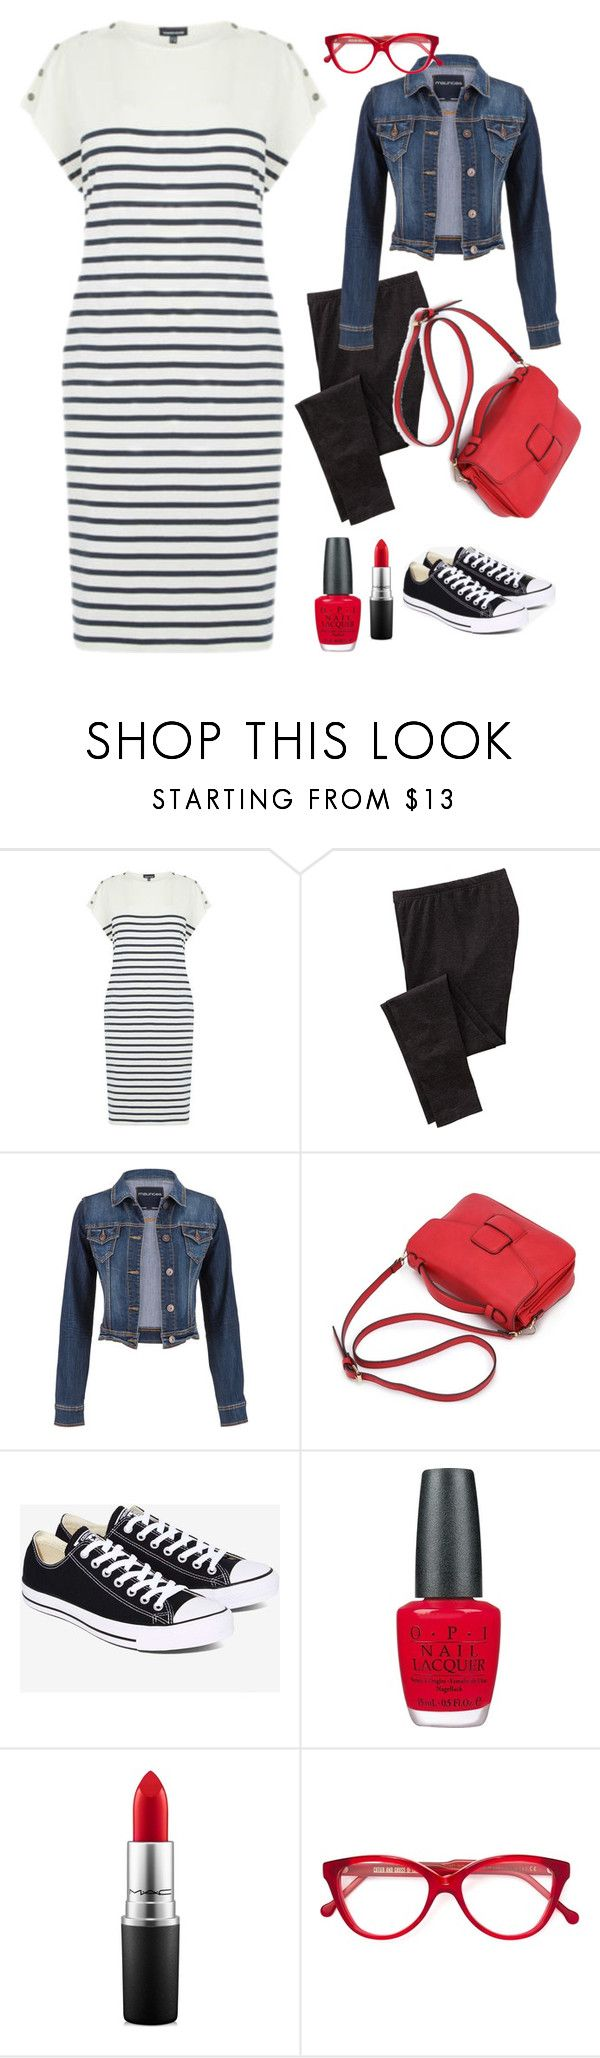 """Striped Shirt Dress"" by irene-ireen ❤ liked on Polyvore featuring Warehouse, Old Navy, maurices, Converse, OPI, MAC Cosmetics, Cutler and Gross and shirtdress"